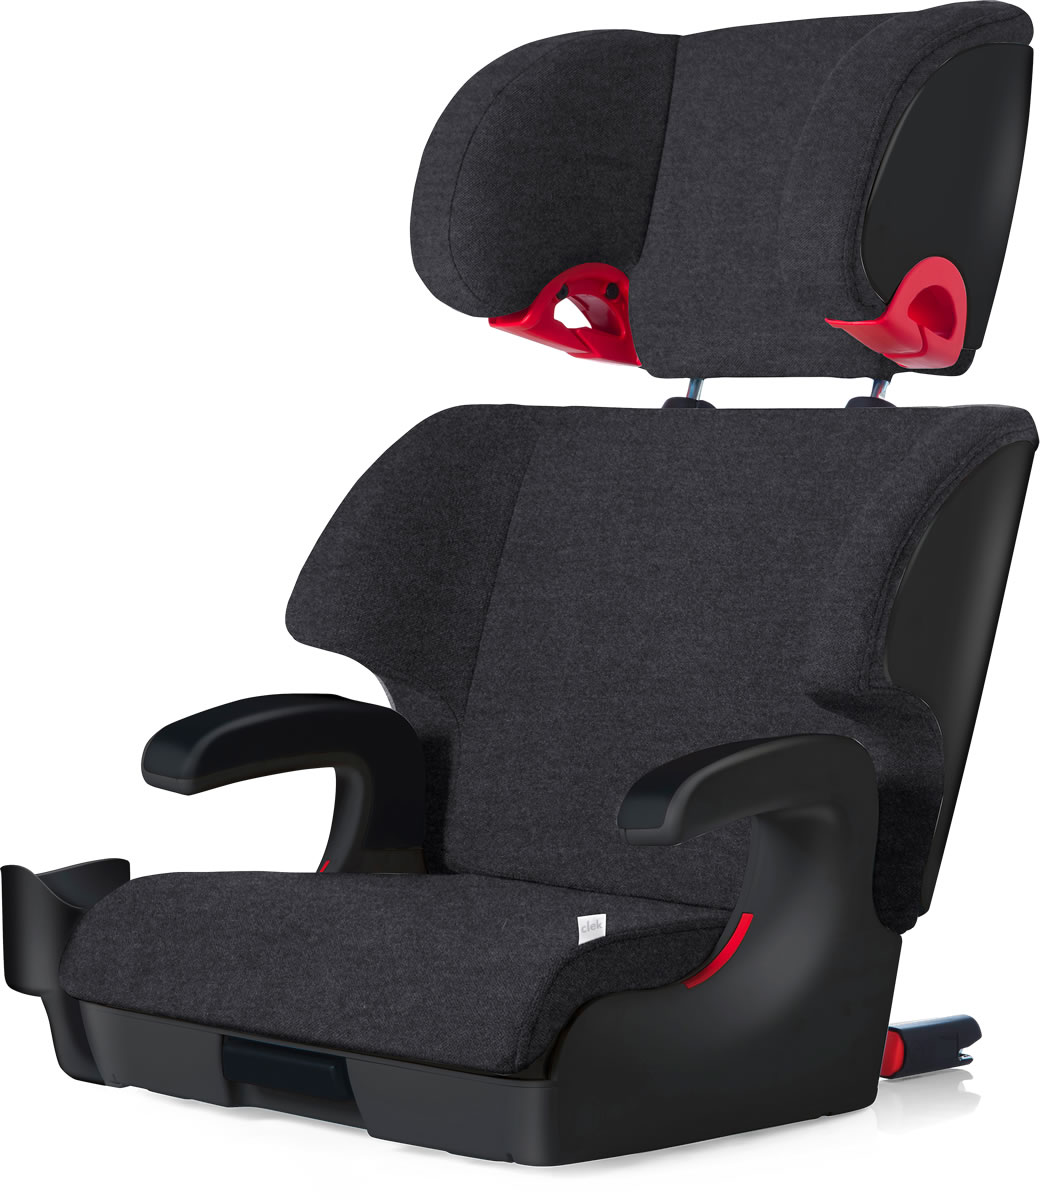 Clek Oobr Booster Car Seat - Mammoth